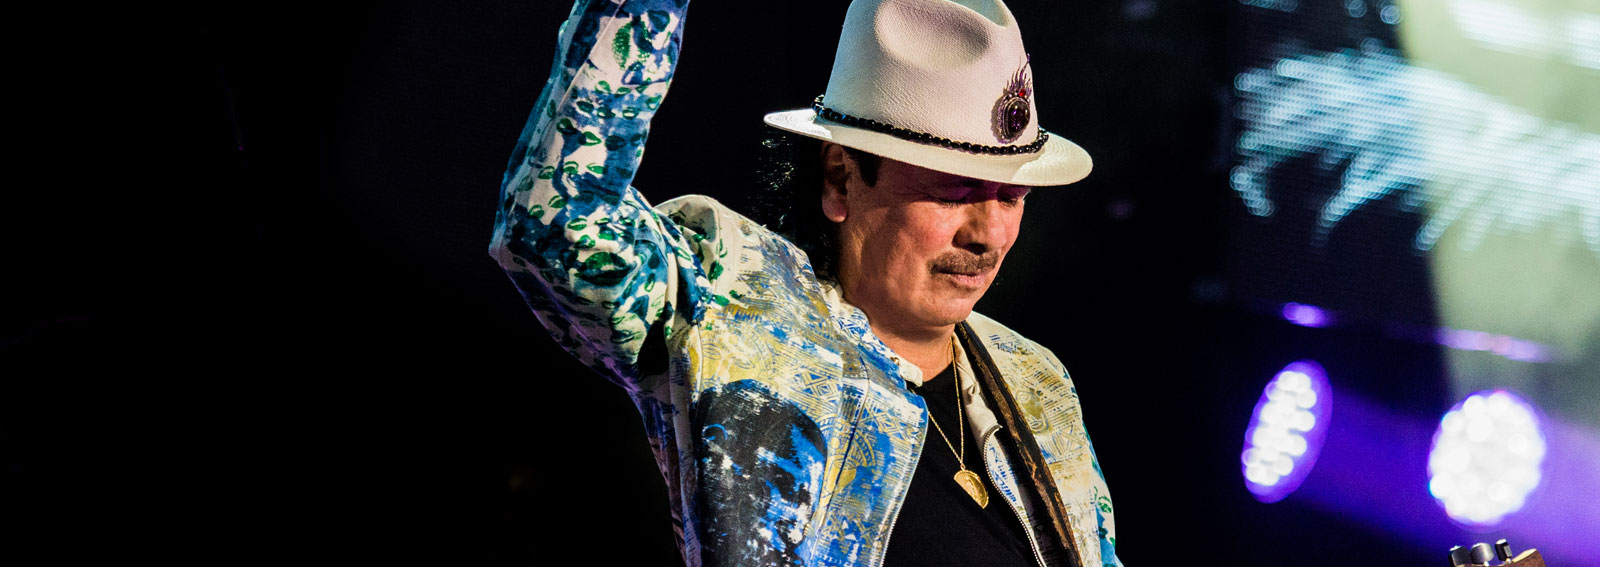 santana-hydro-26th-march-2020